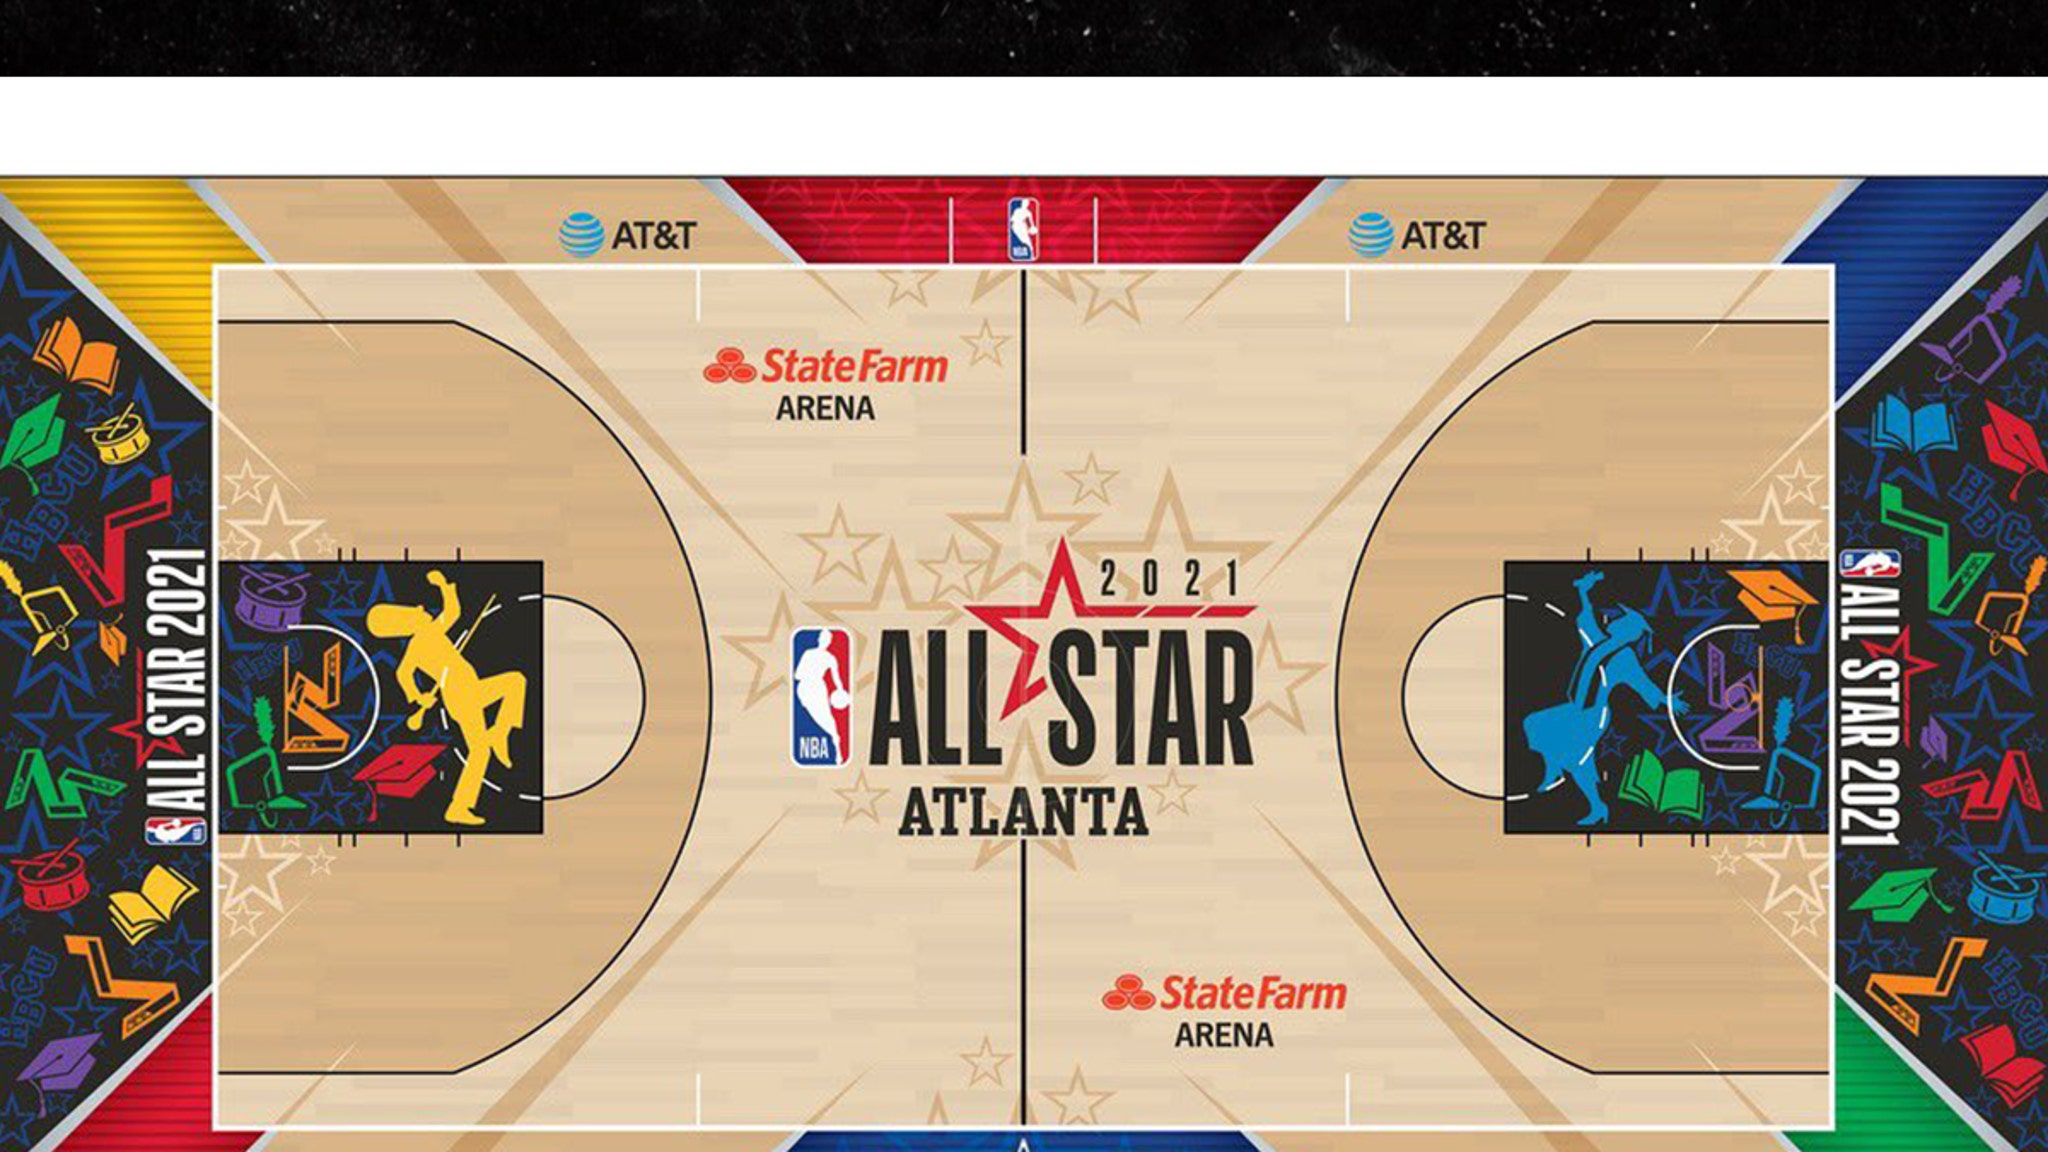 The 2021 NBA All-Star Game will feature a special court designed to honor historically black colleges and universities ... and the first images look amazing! NBA officials previously announced the March 7th event at State Farm Arena in…  Permalink